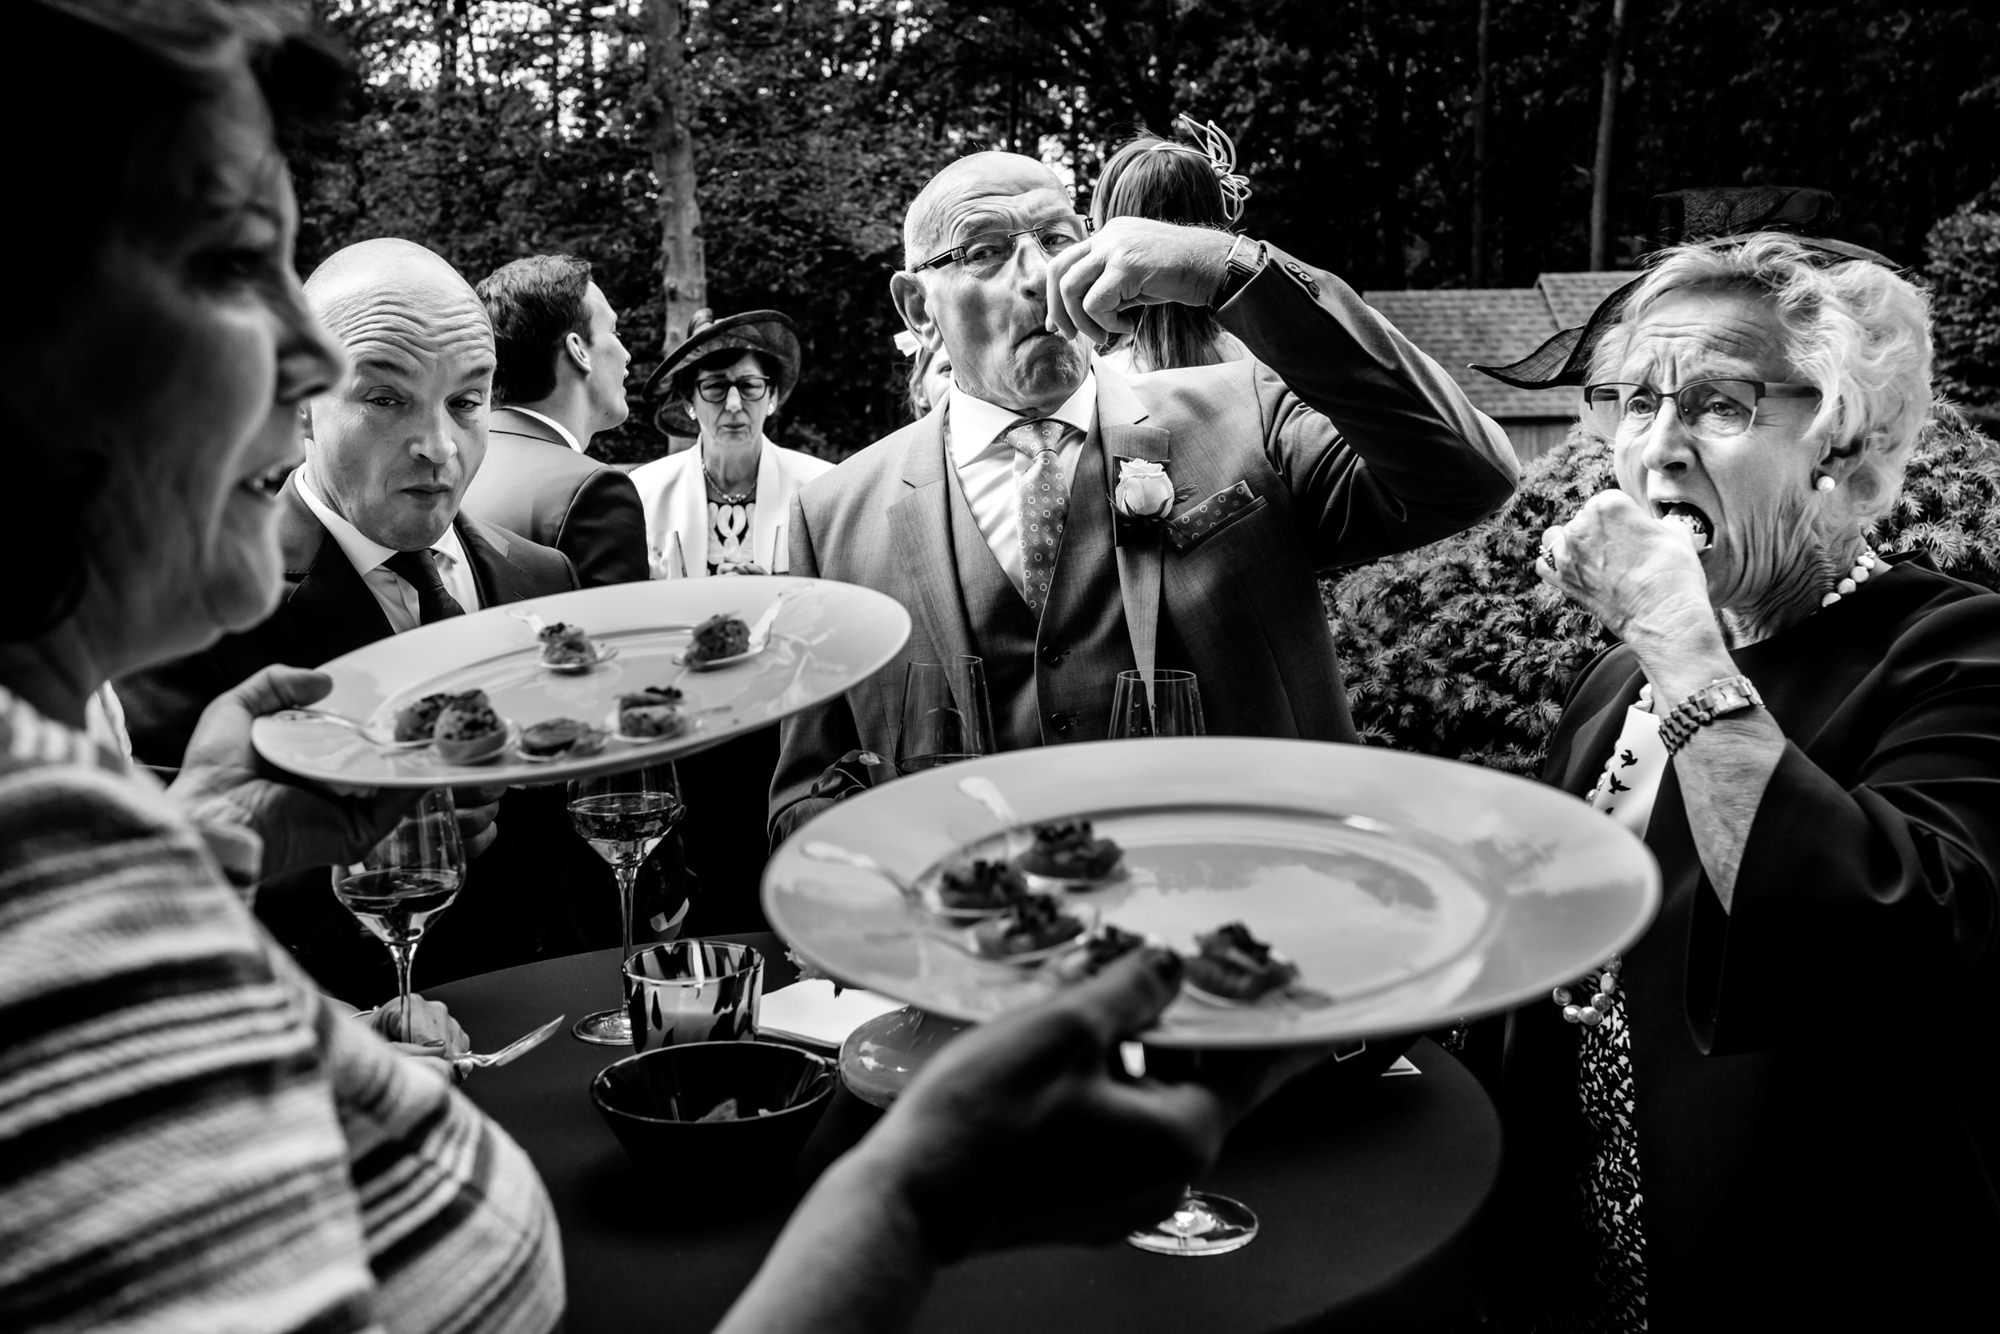 Guest eating canapes - photo by Phillipe Swiggers